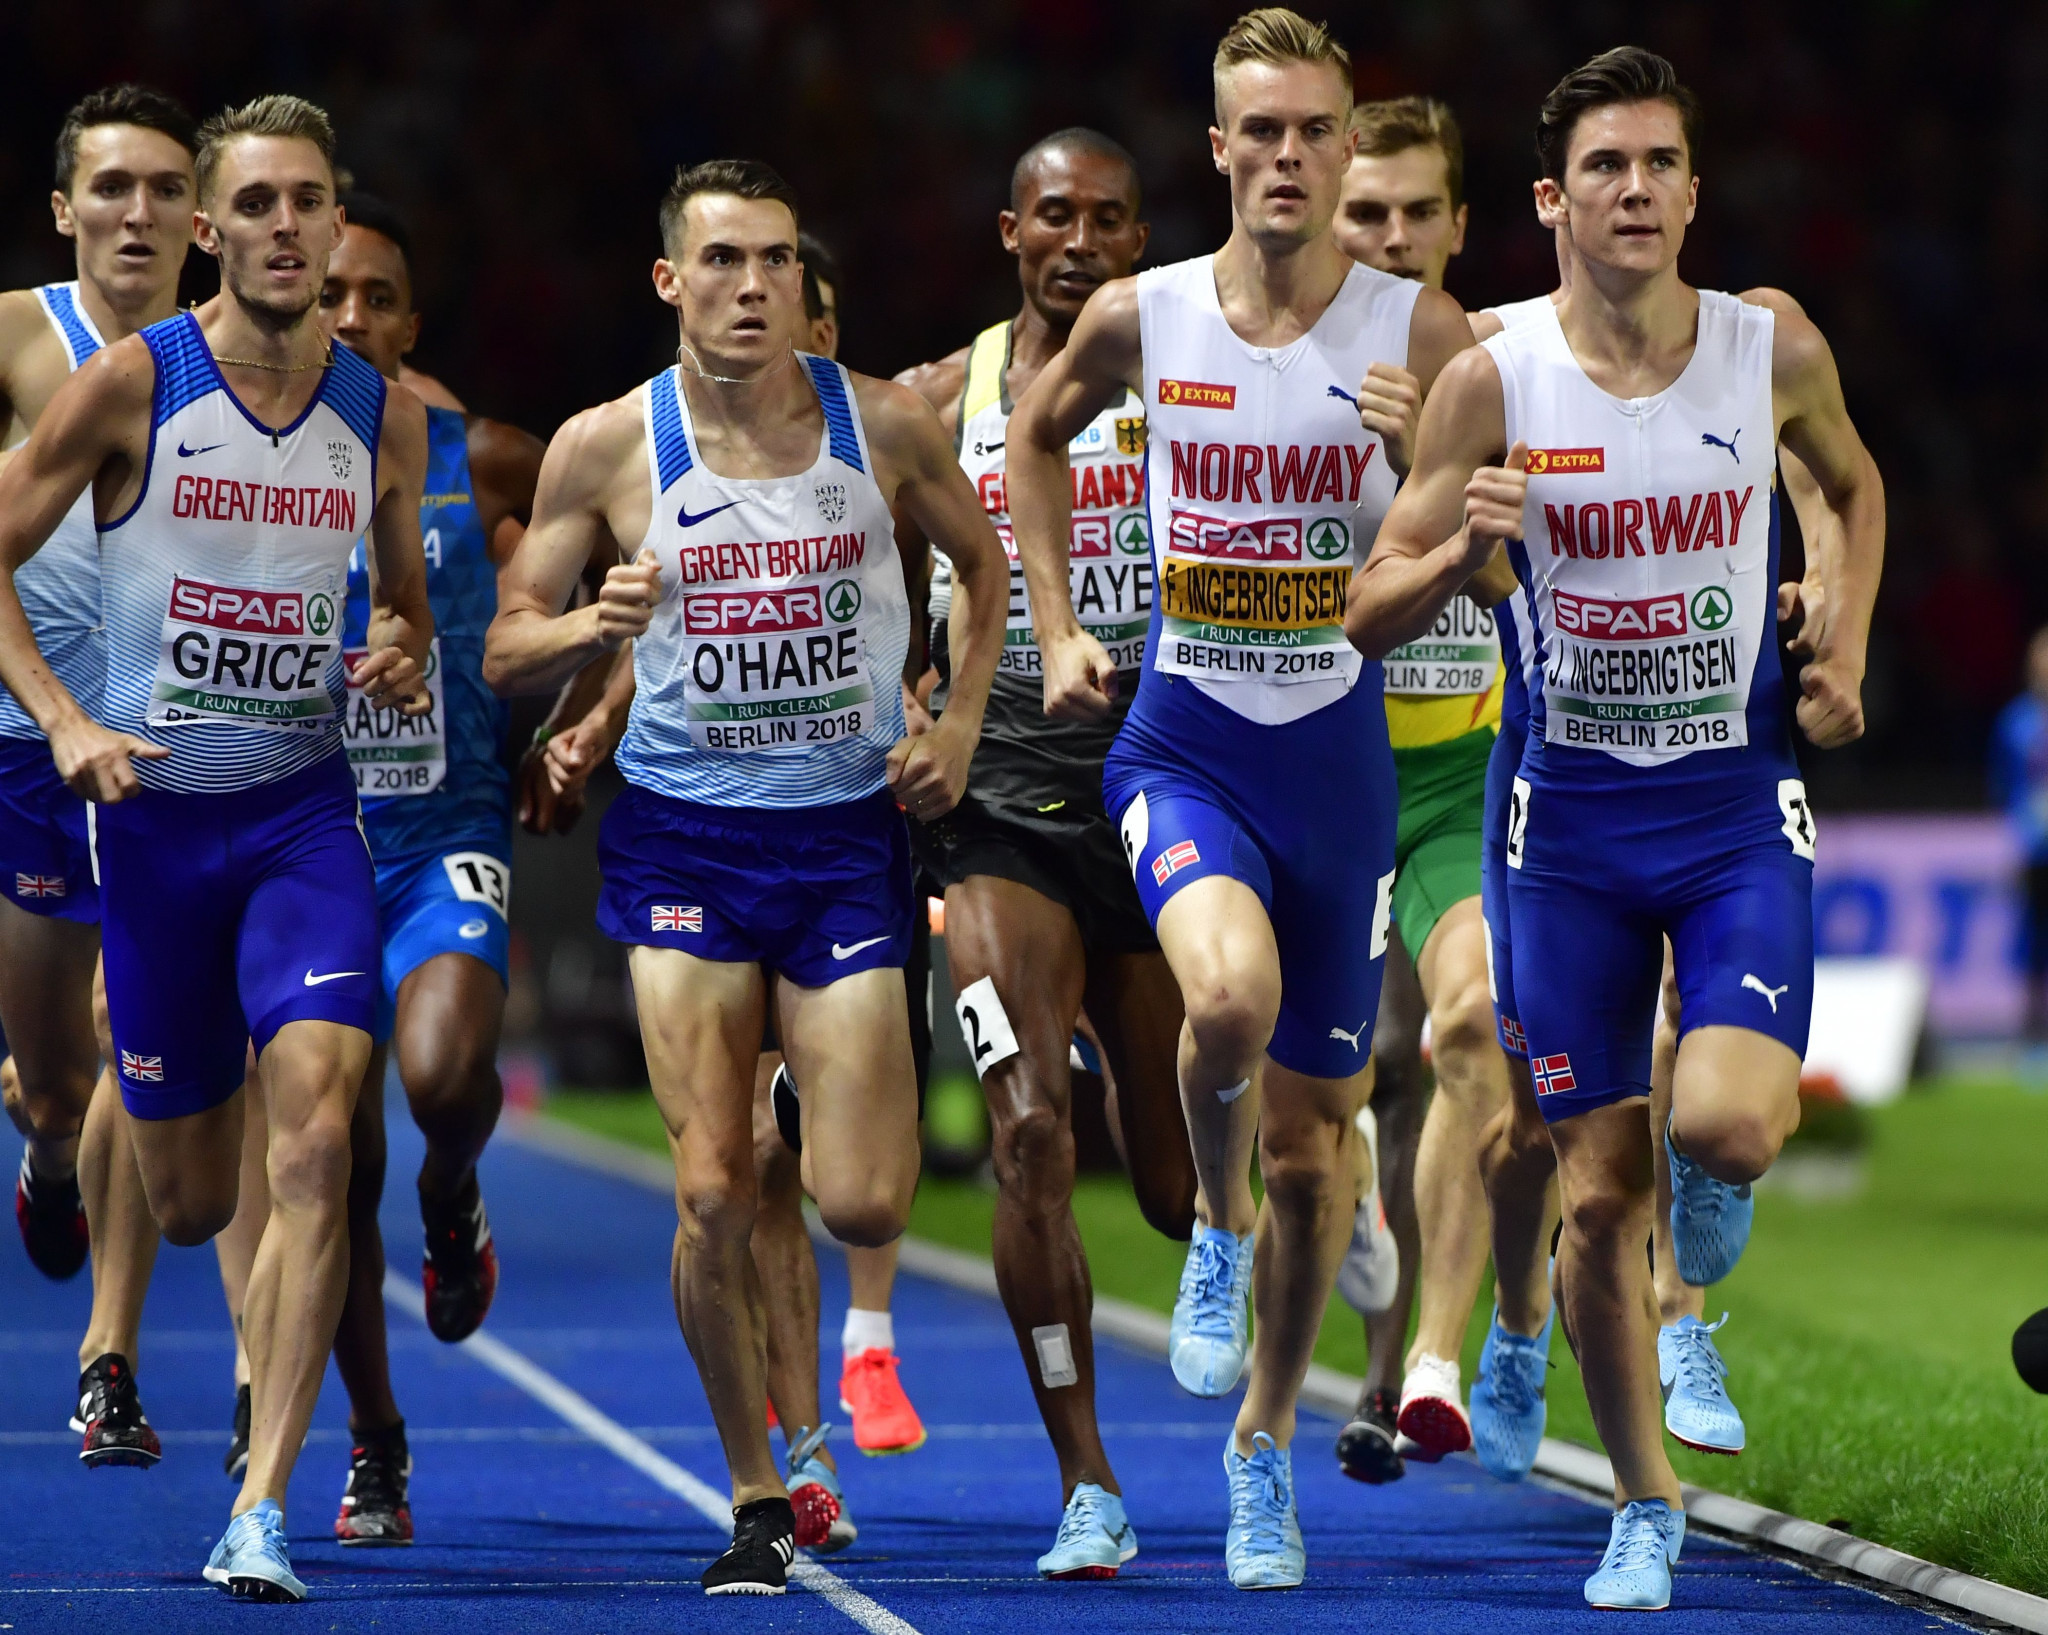 Norwegian broadcaster NRK achieved an 80 per cent market share for the conclusion of the European Athletics Championships men's 1,500m in Berlin, won by 17-year-old Jakob Ingegebrigtsen, right ©Getty Images